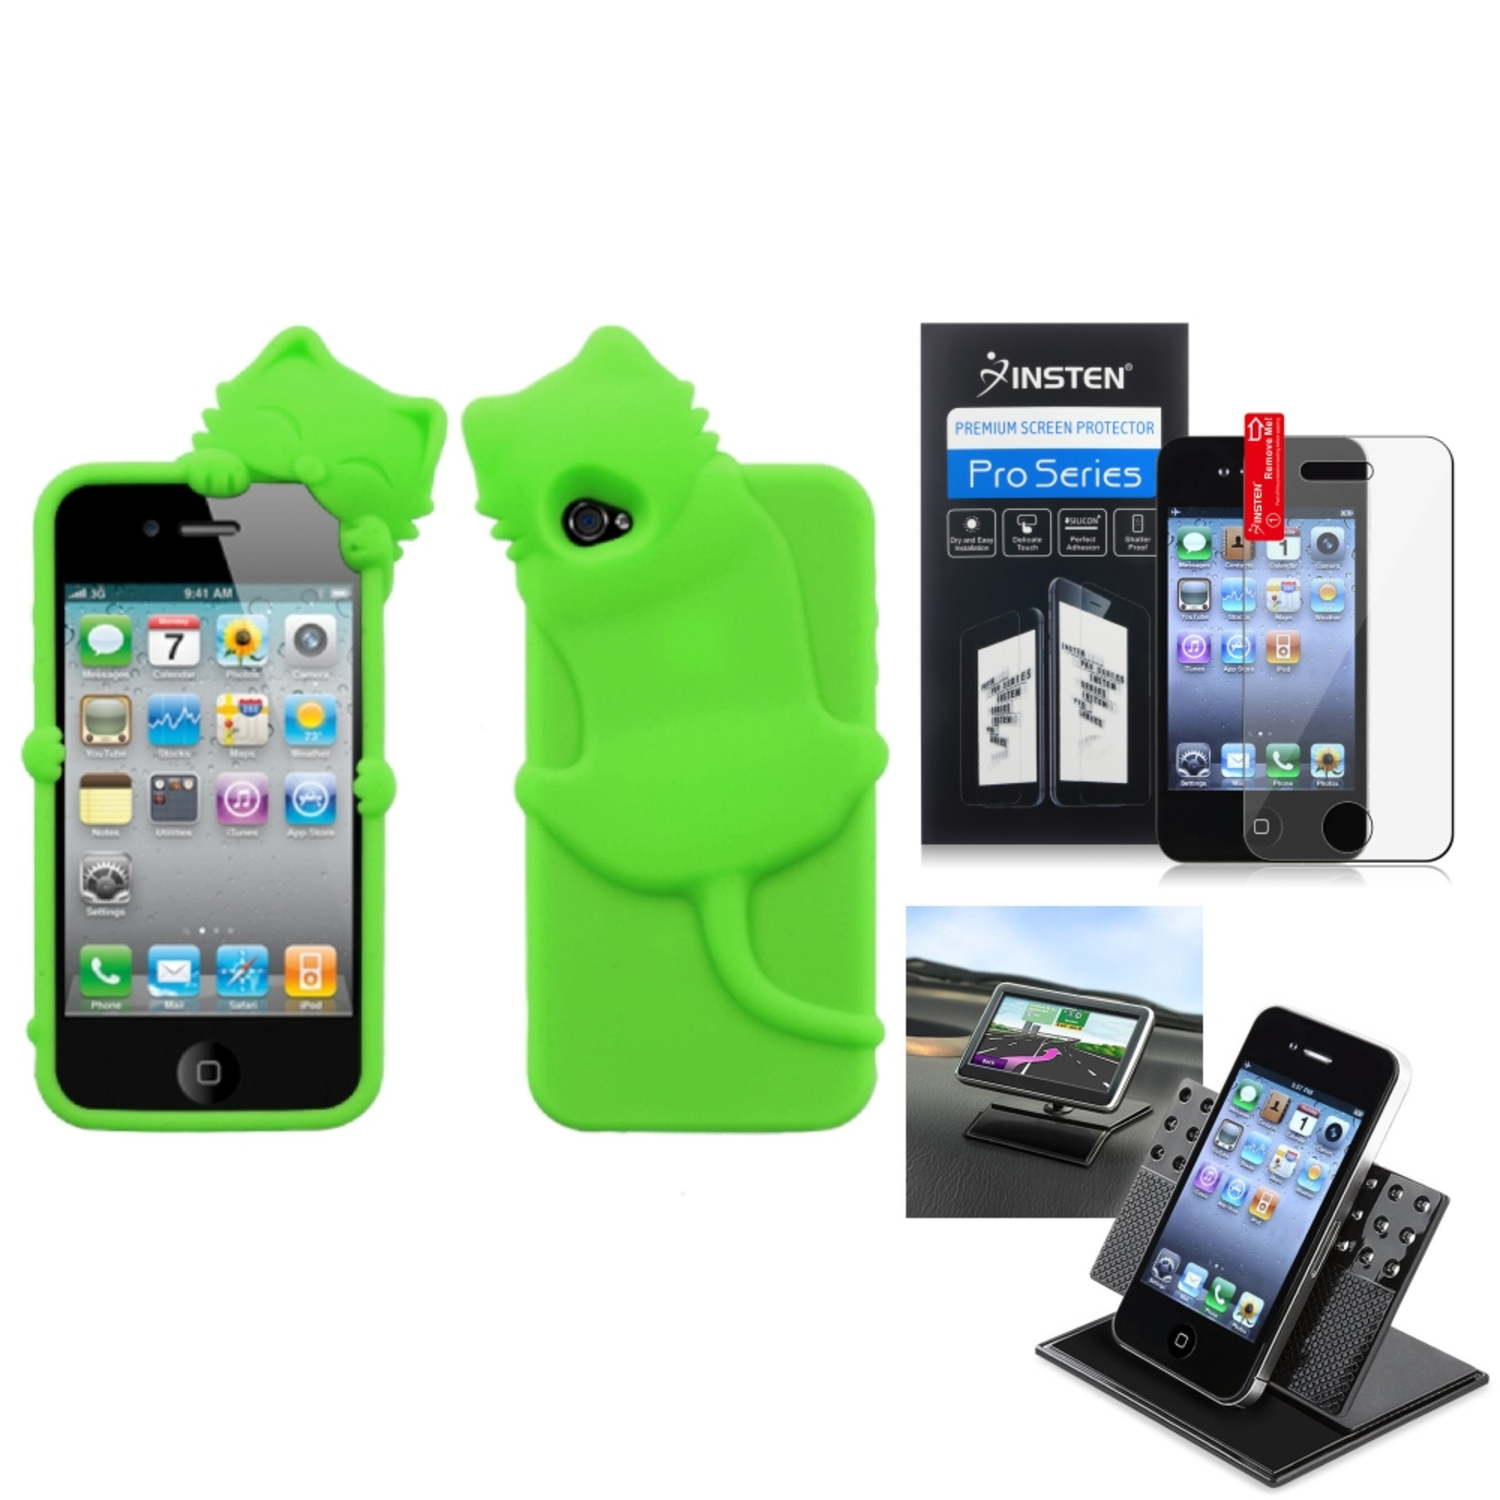 Insten Film Holder Electric Green Cat Peeking Pets Case Cover For APPLE iPhone 4S/4